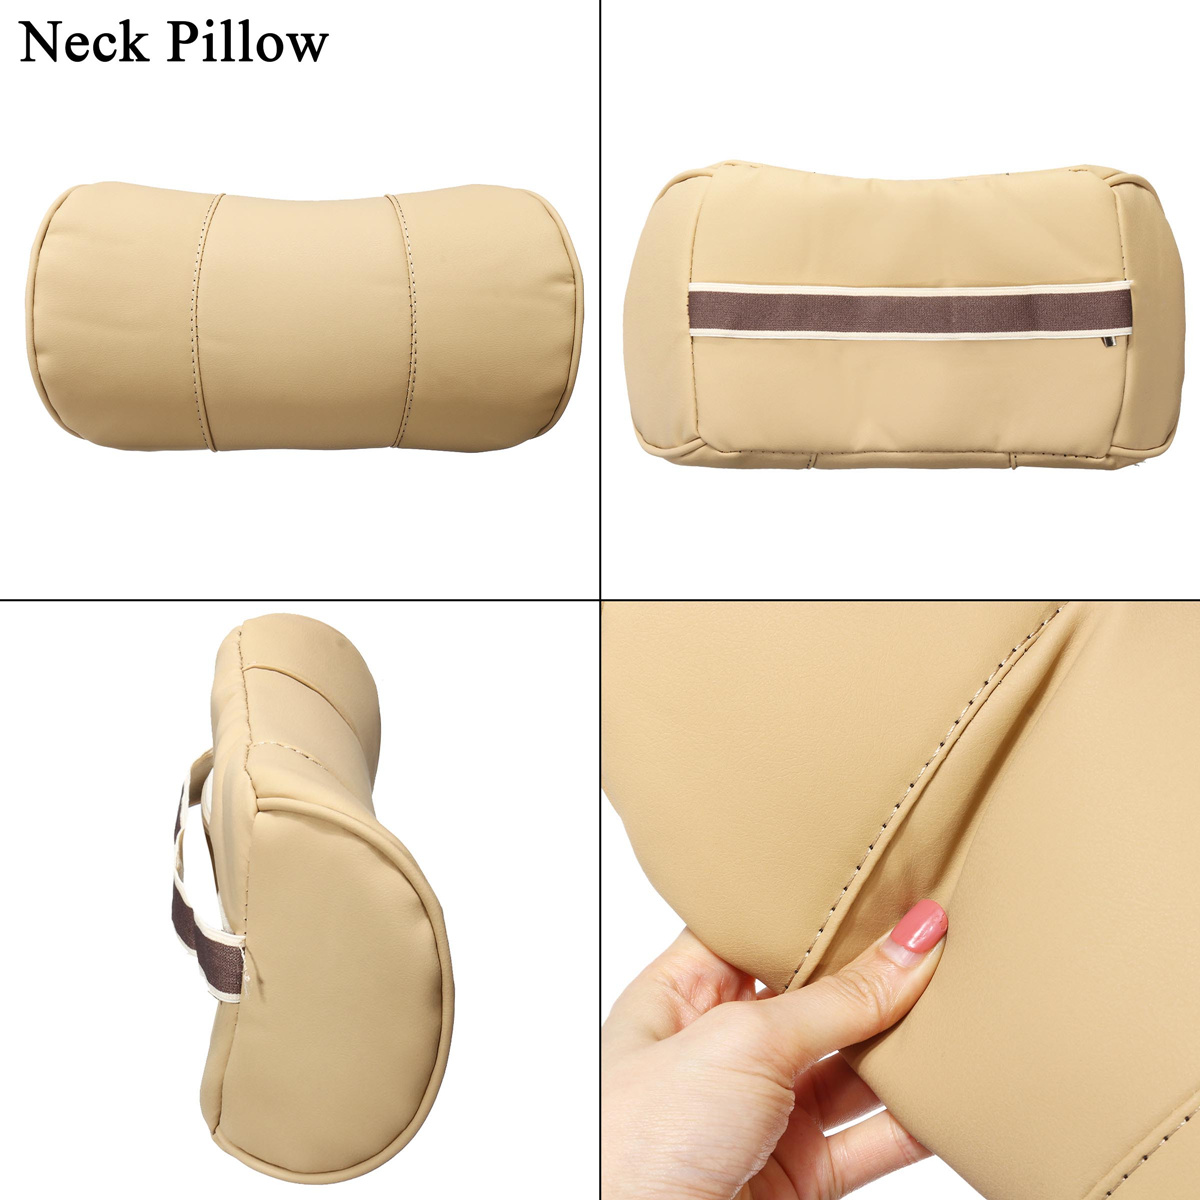 Removable Lumbar Pillow for Car Made with High Density Memory foam and PU Leather for Back Pain relief 13